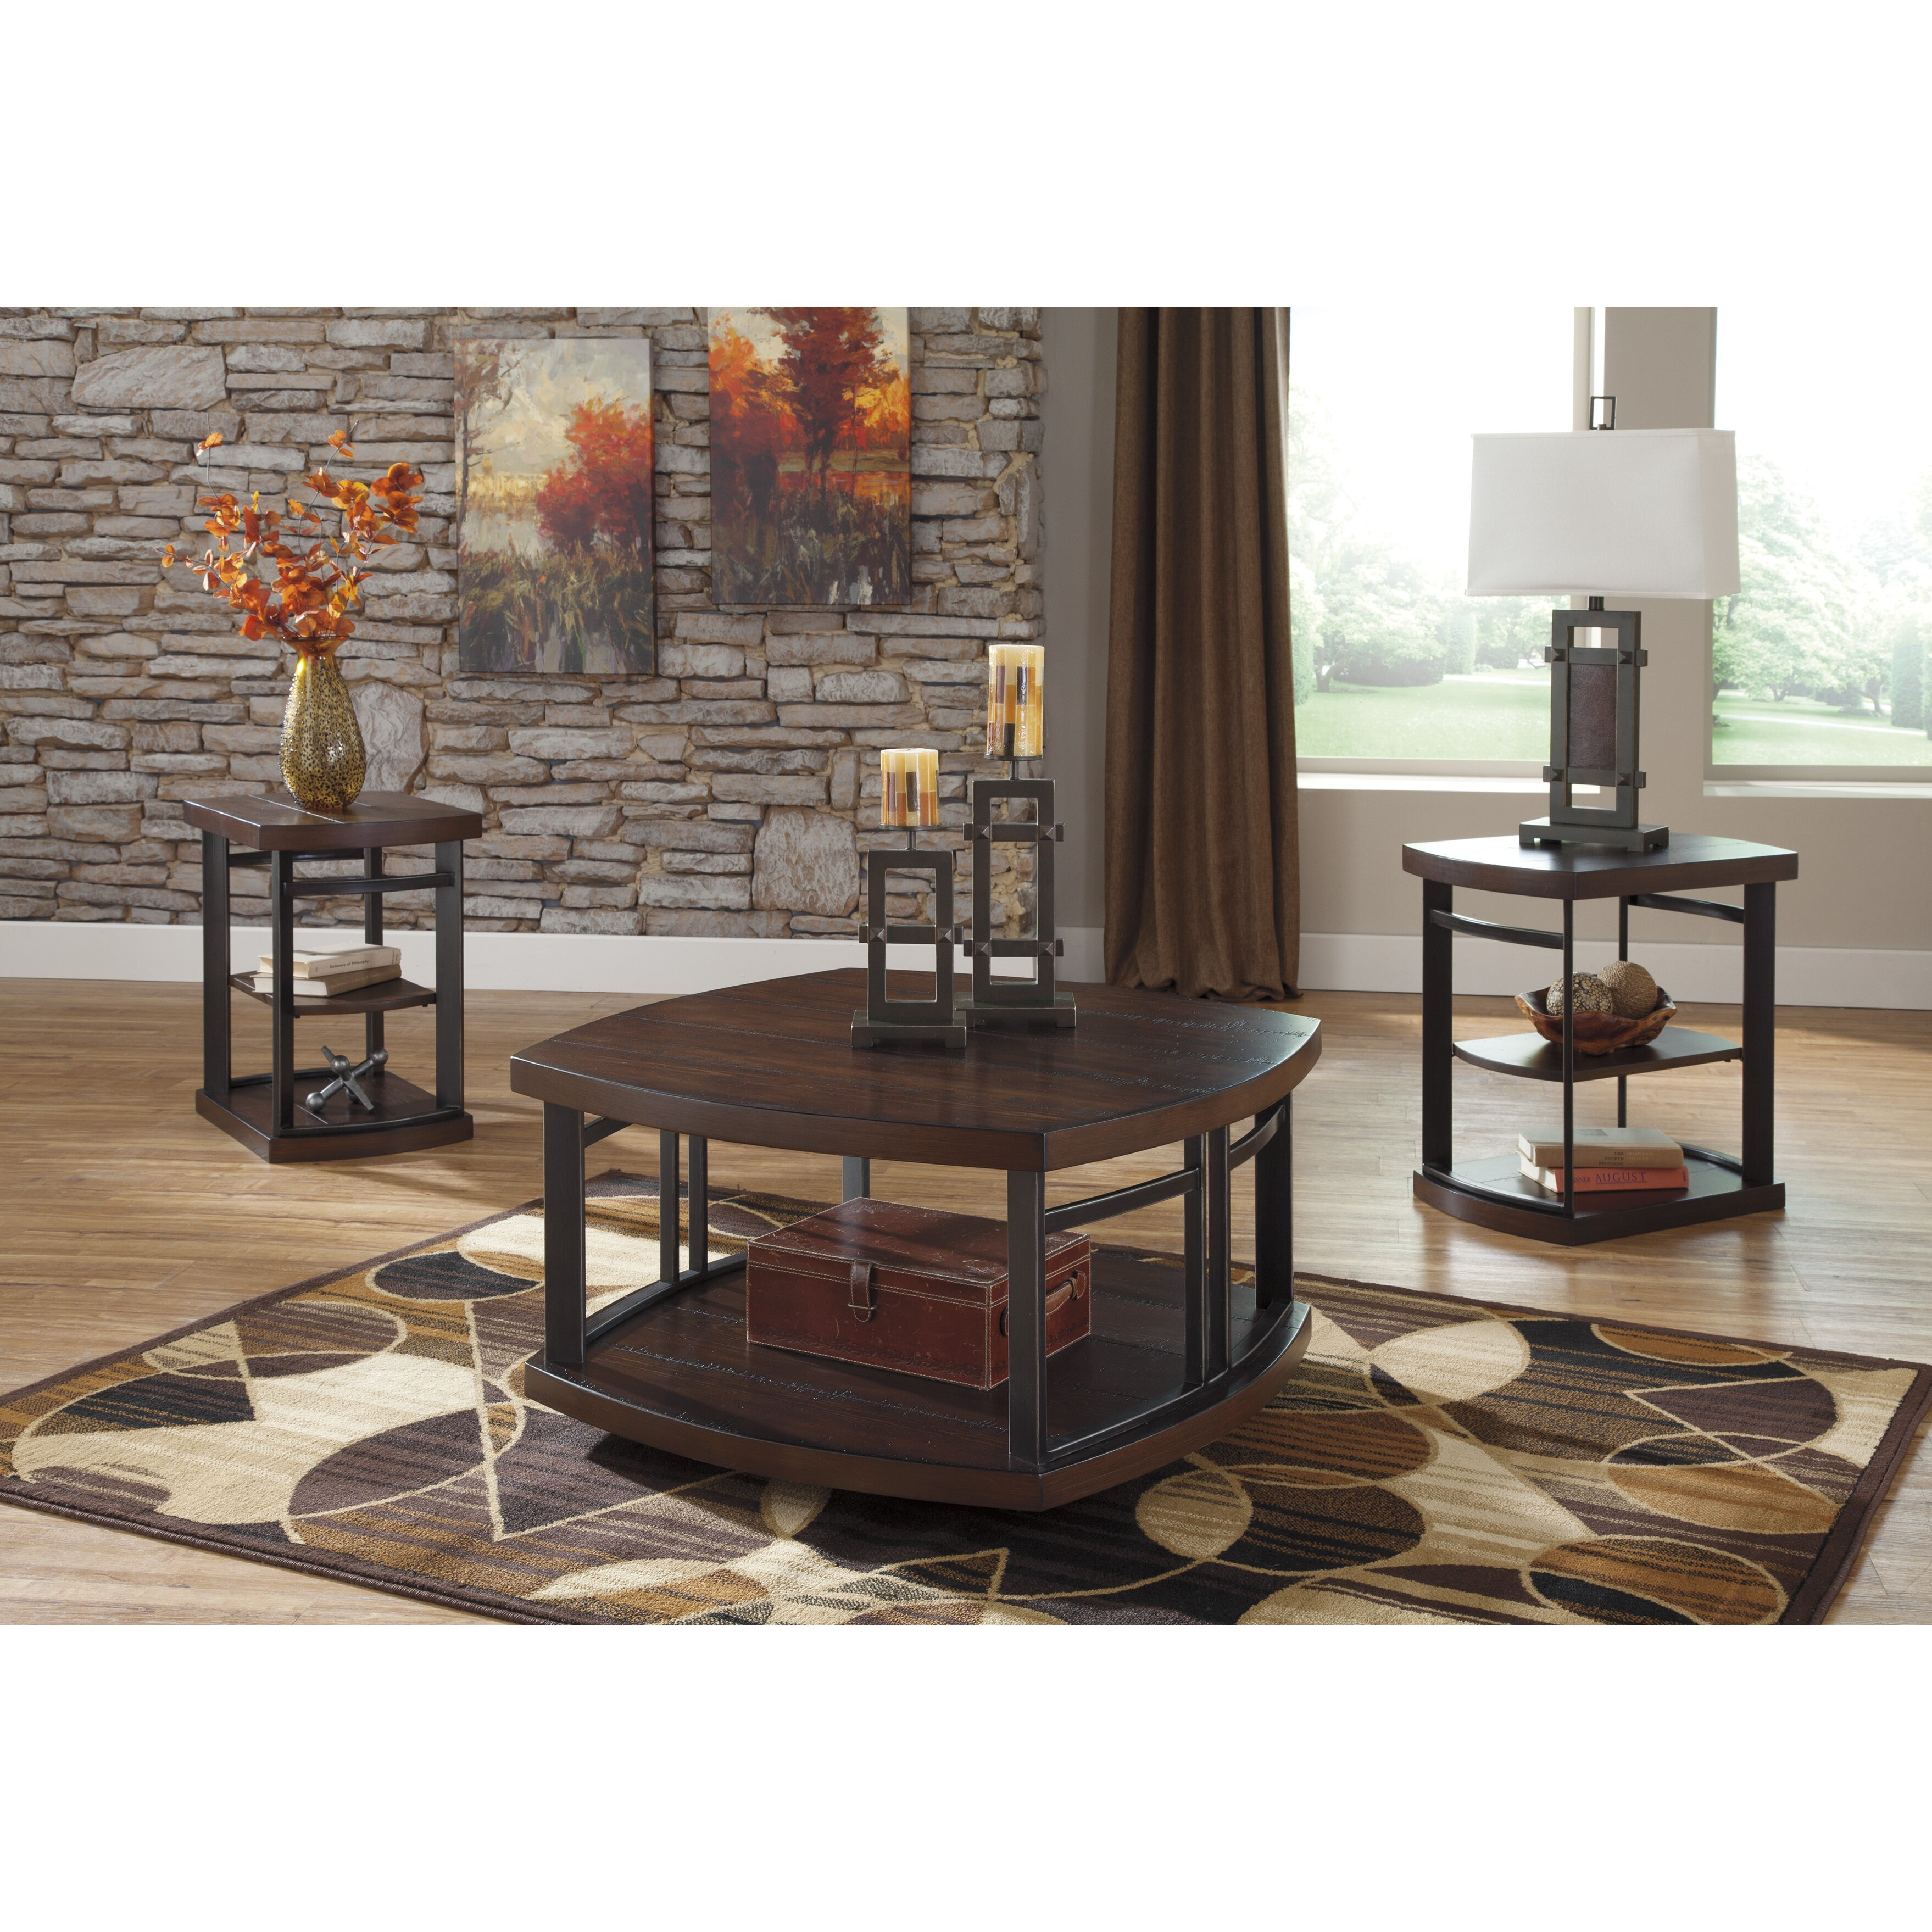 Coffee Table Sets For Living Room: Brayden Studio Dube 3 Piece Coffee Table Set & Reviews